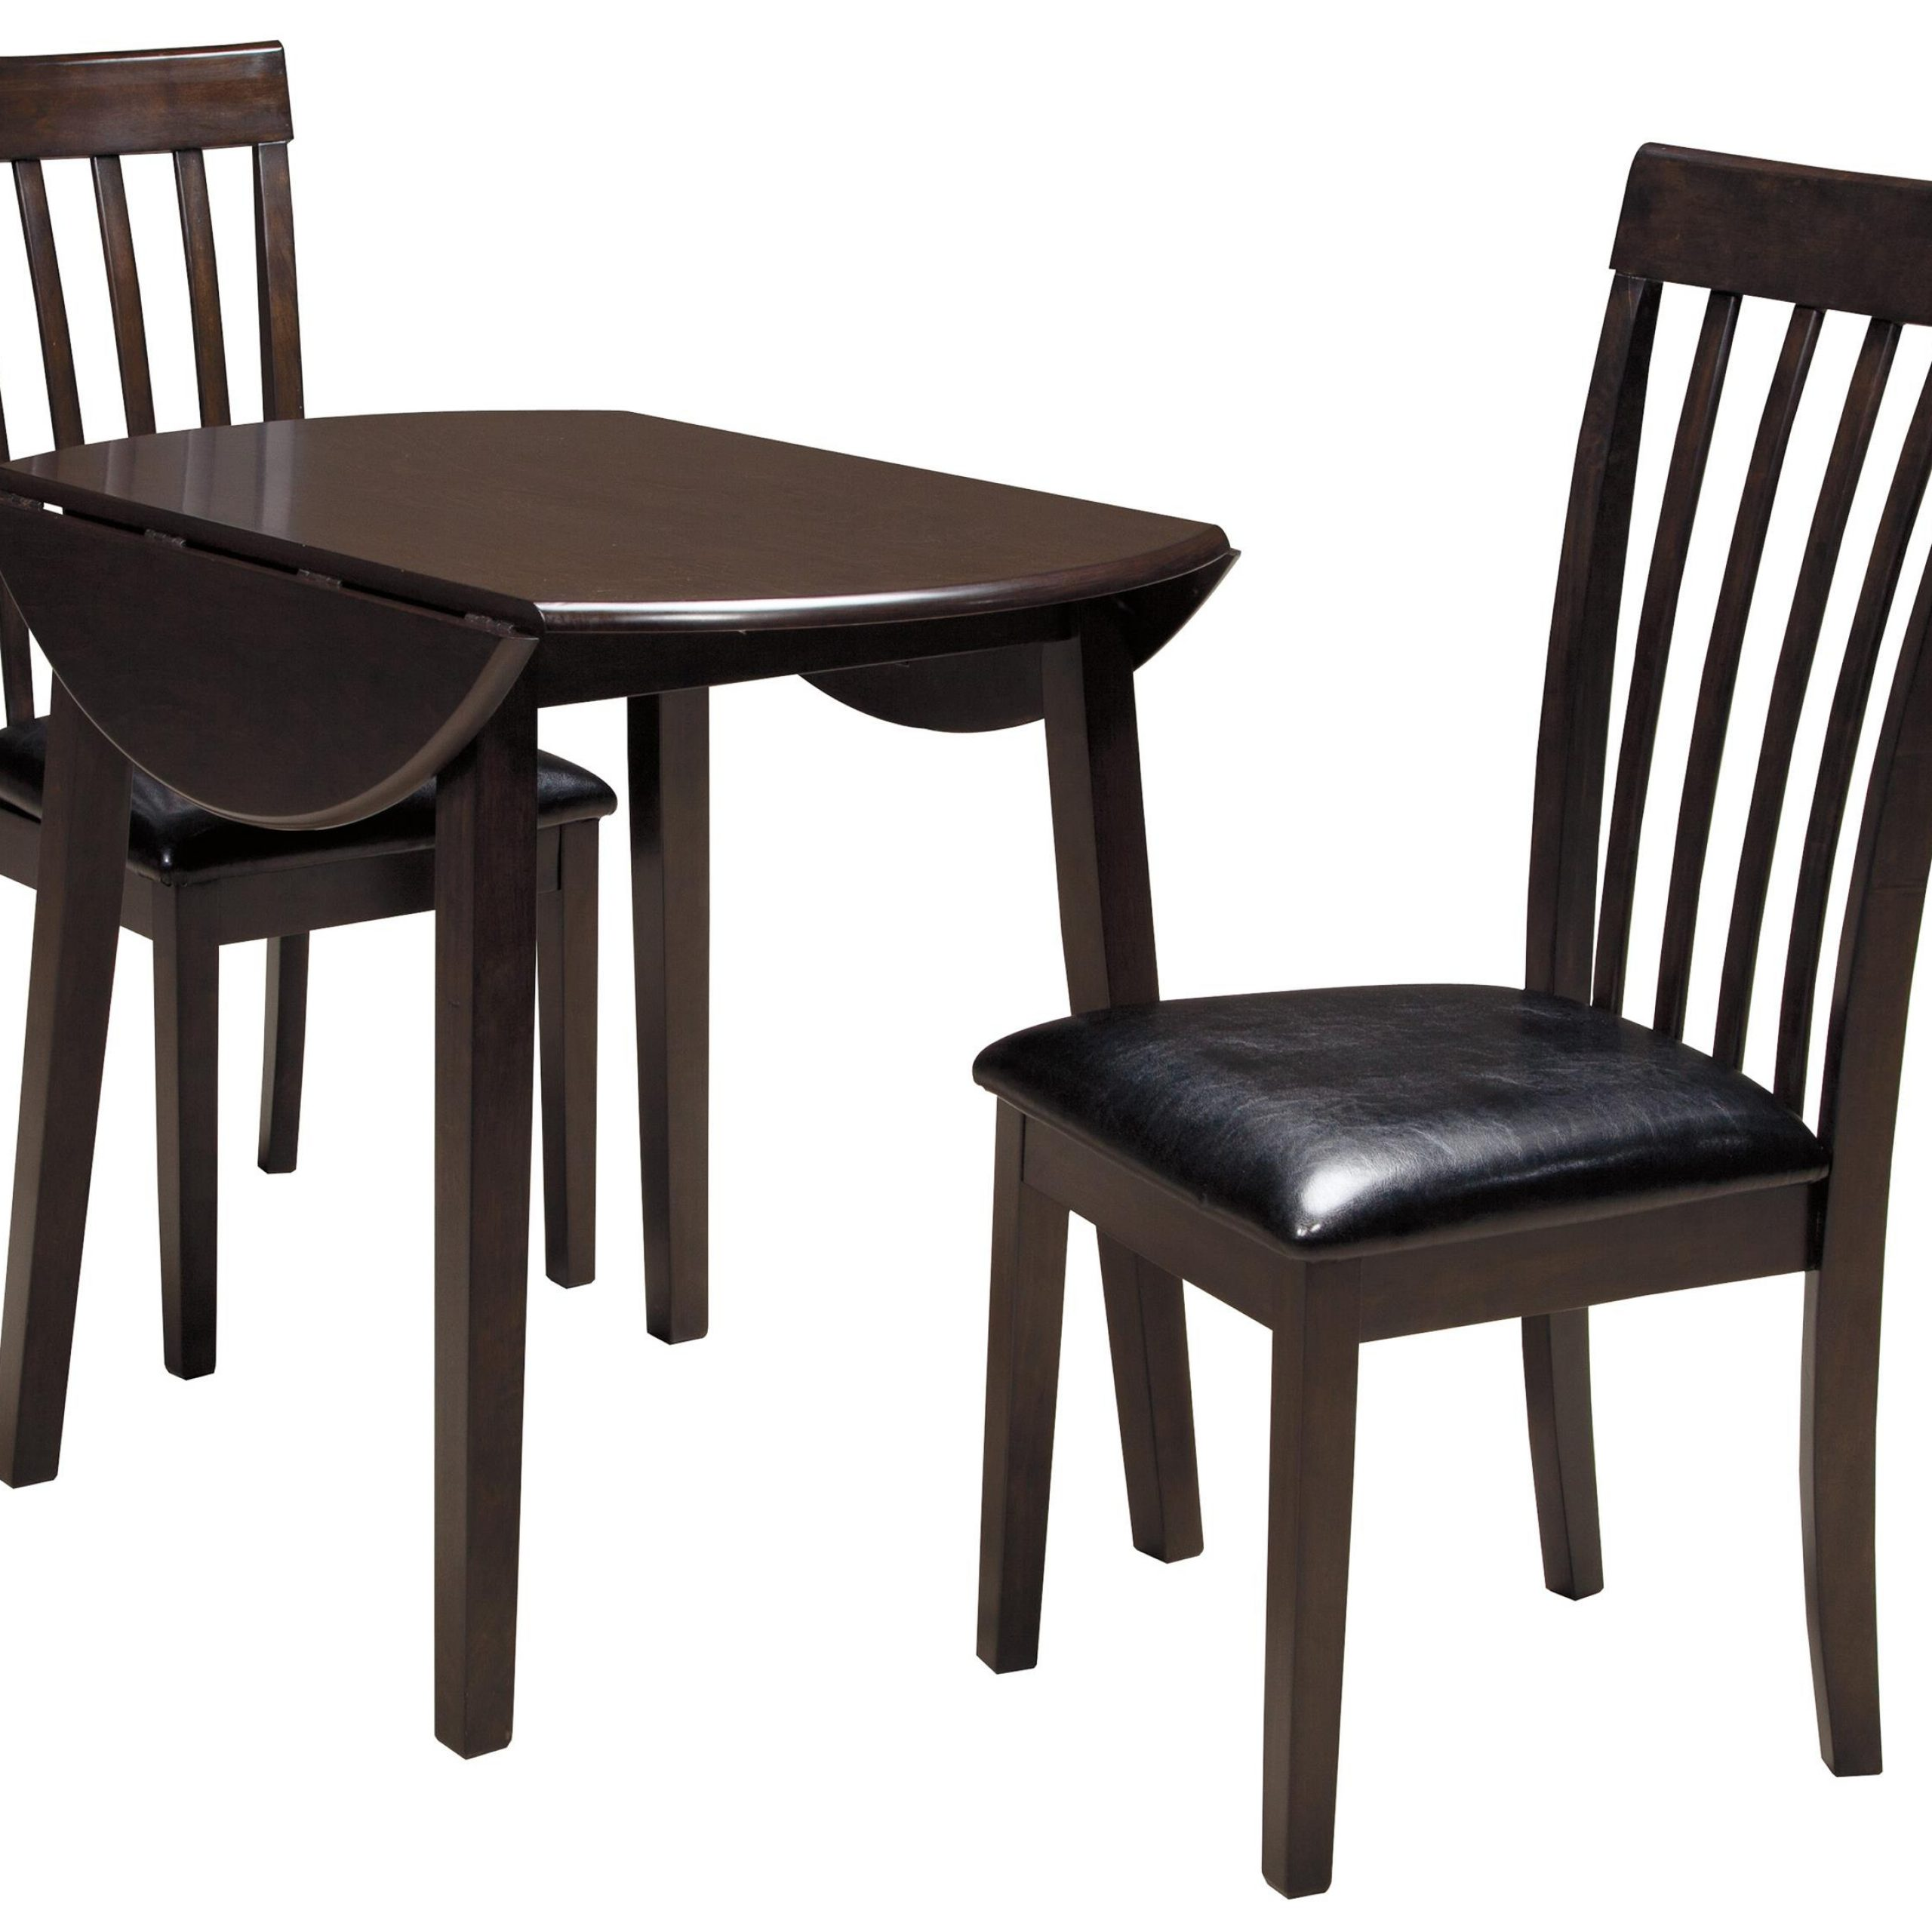 Transitional 3 Piece Drop Leaf Casual Dining Tables Set Intended For Trendy Hammis 3 Piece Round Drop Leaf Table Set (View 21 of 30)